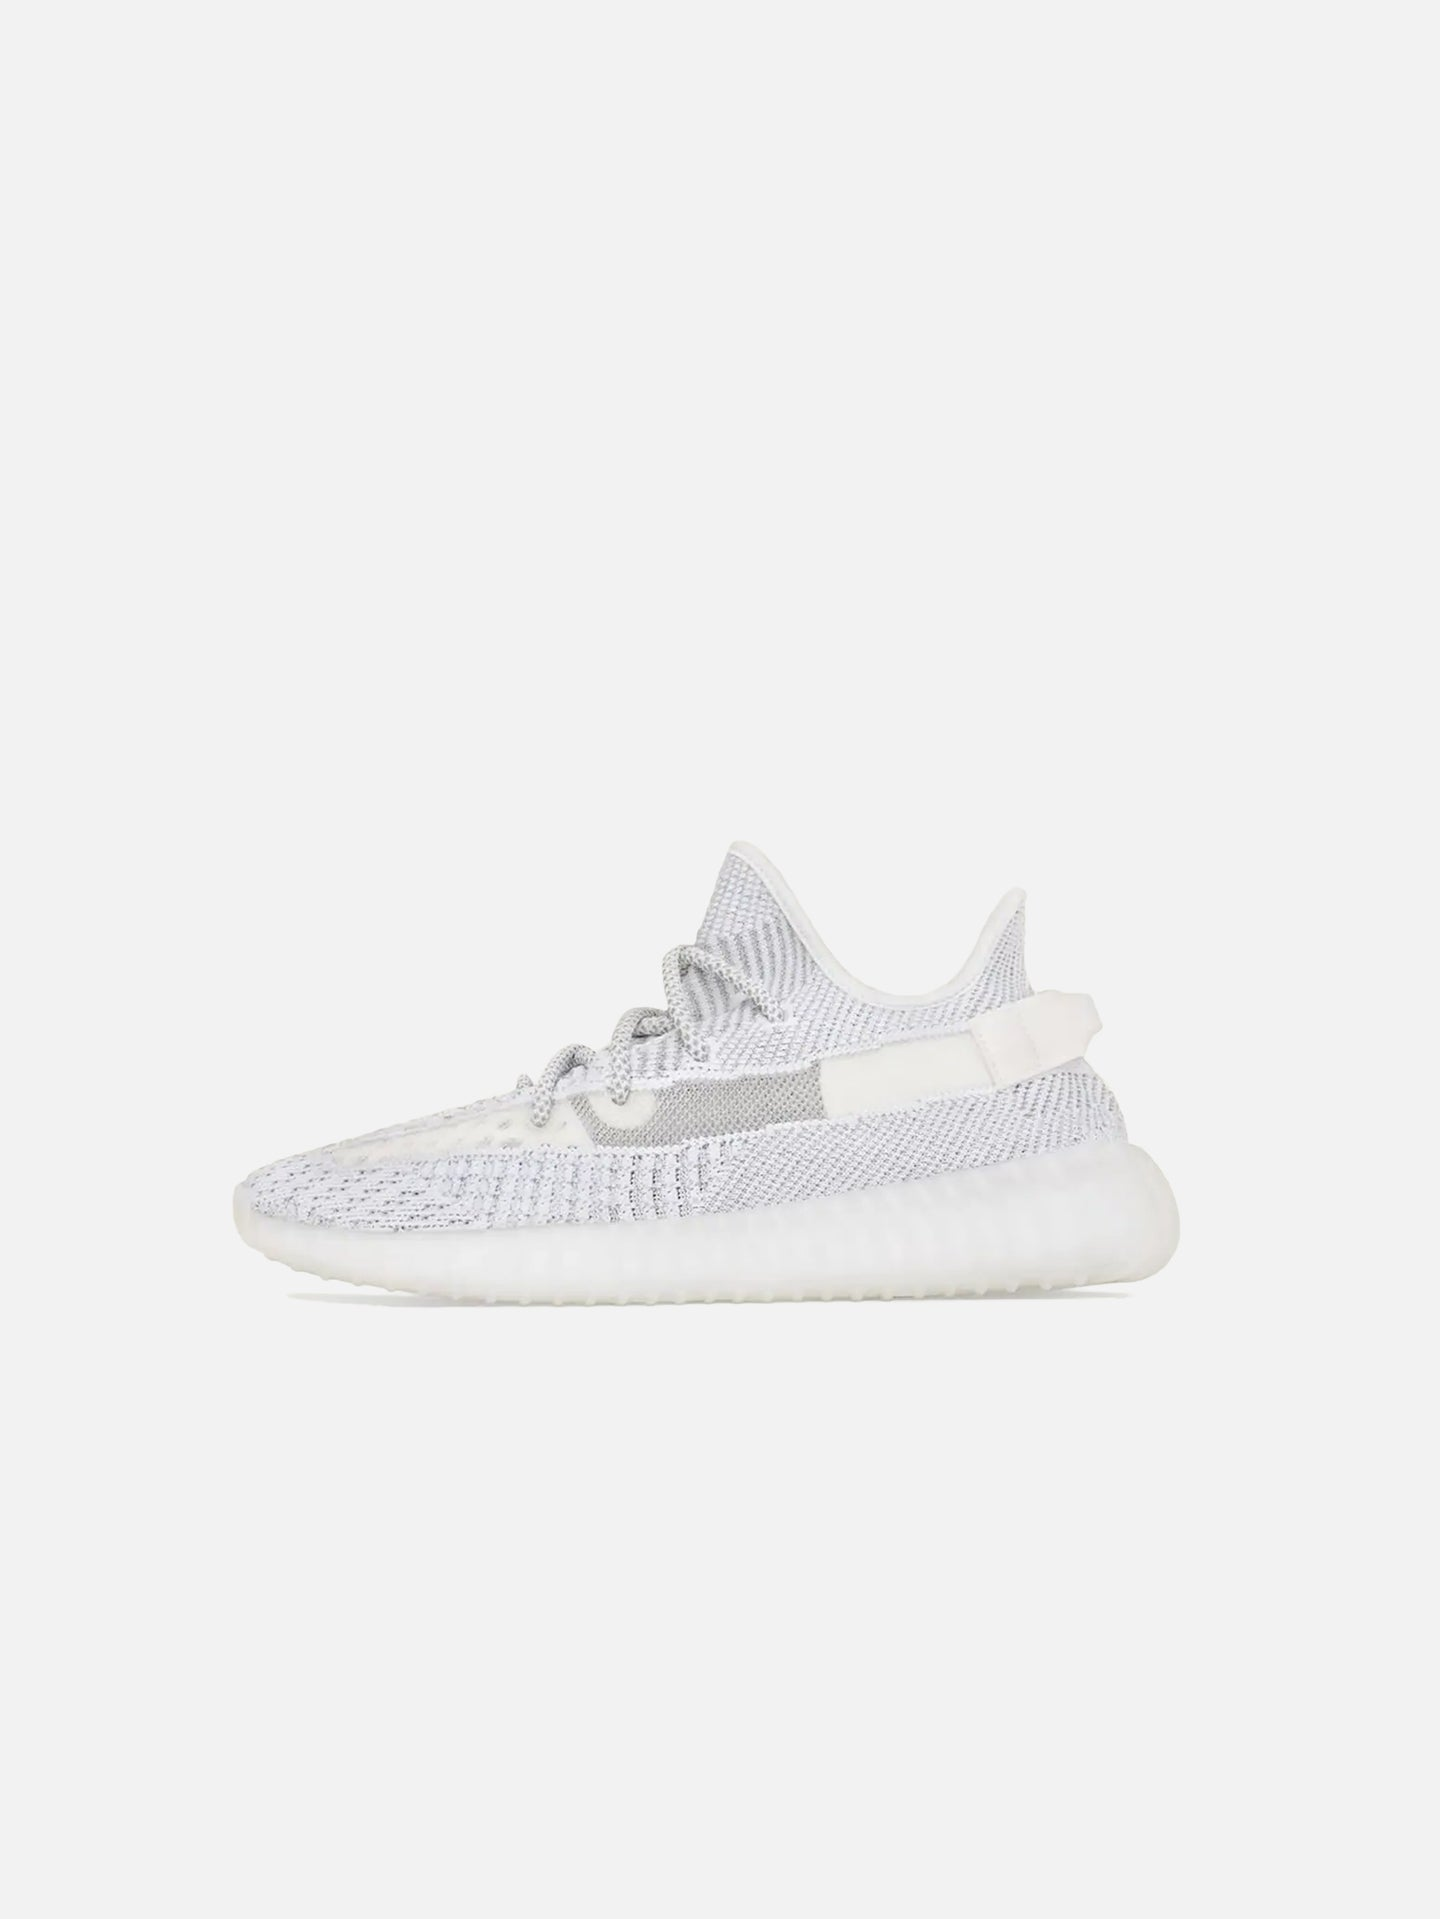 YEEZY BOOST 350 V2: STATIC